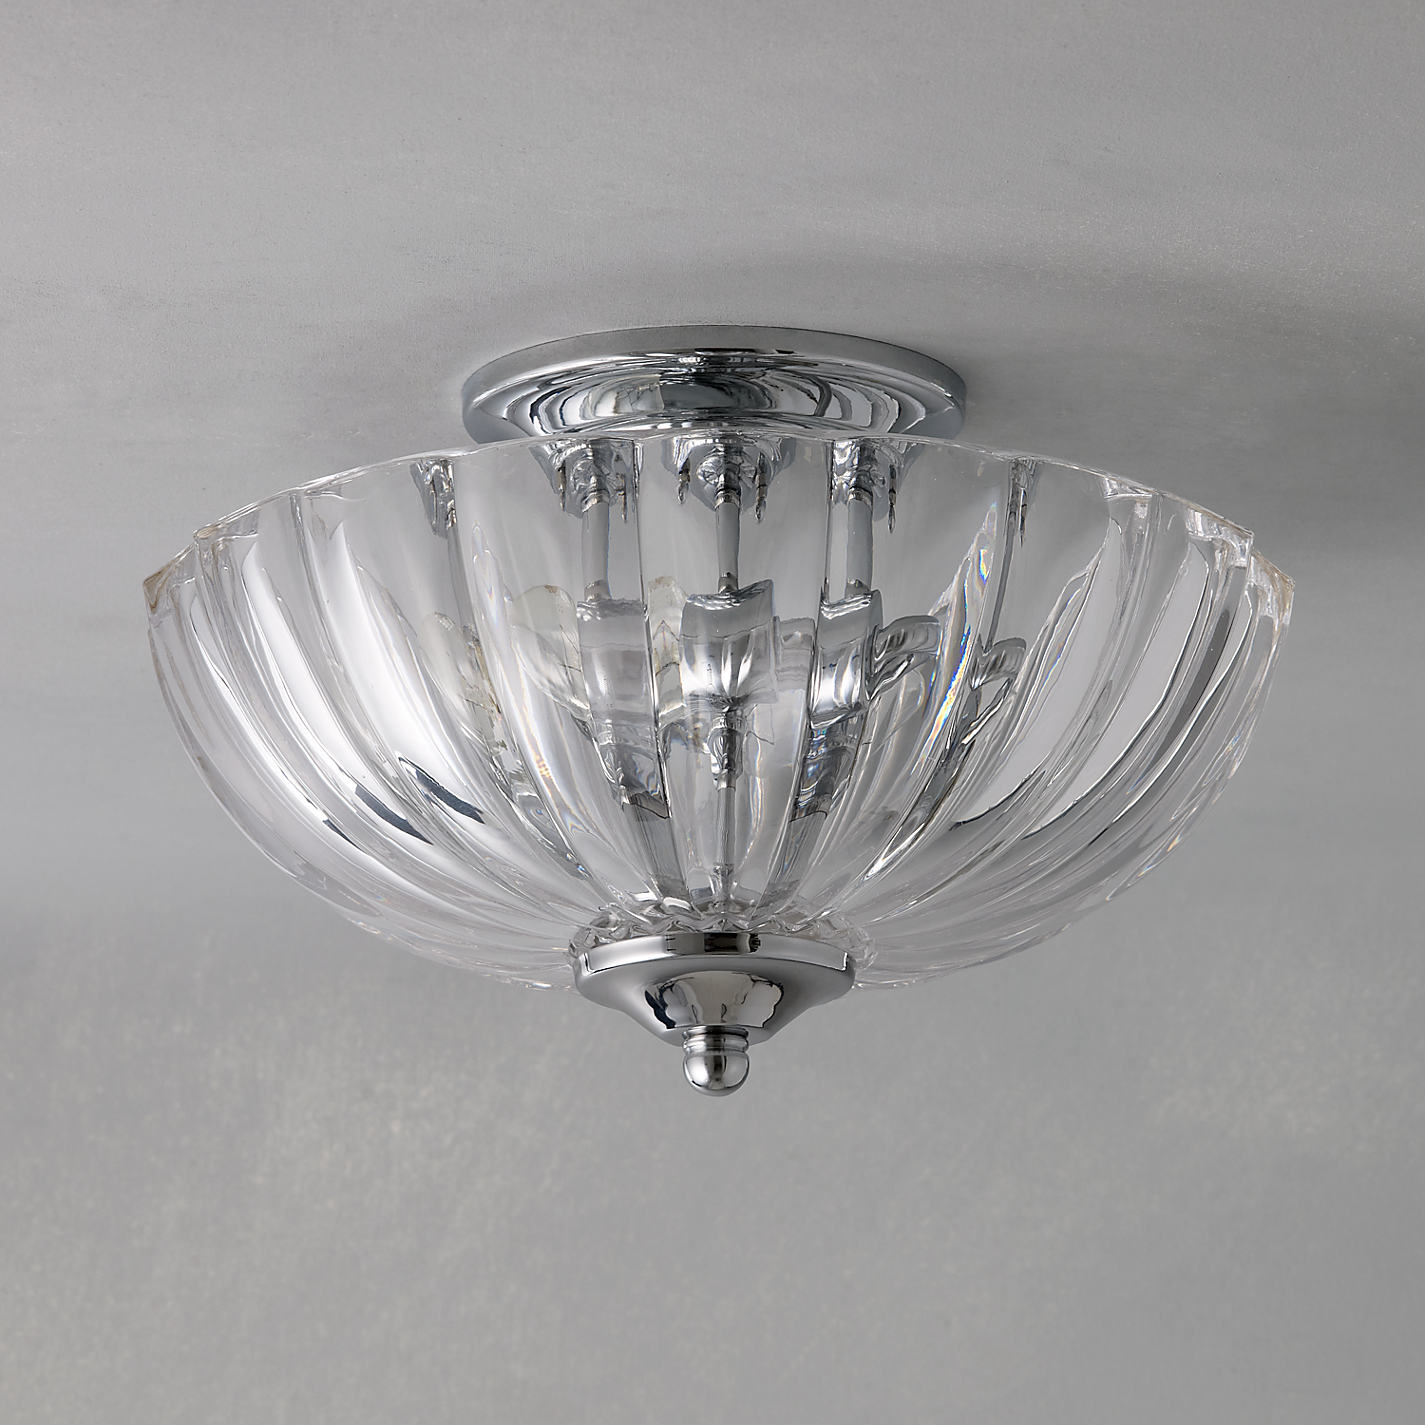 Buy john lewis senna ceiling light john lewis buy john lewis senna ceiling light online at johnlewis aloadofball Gallery